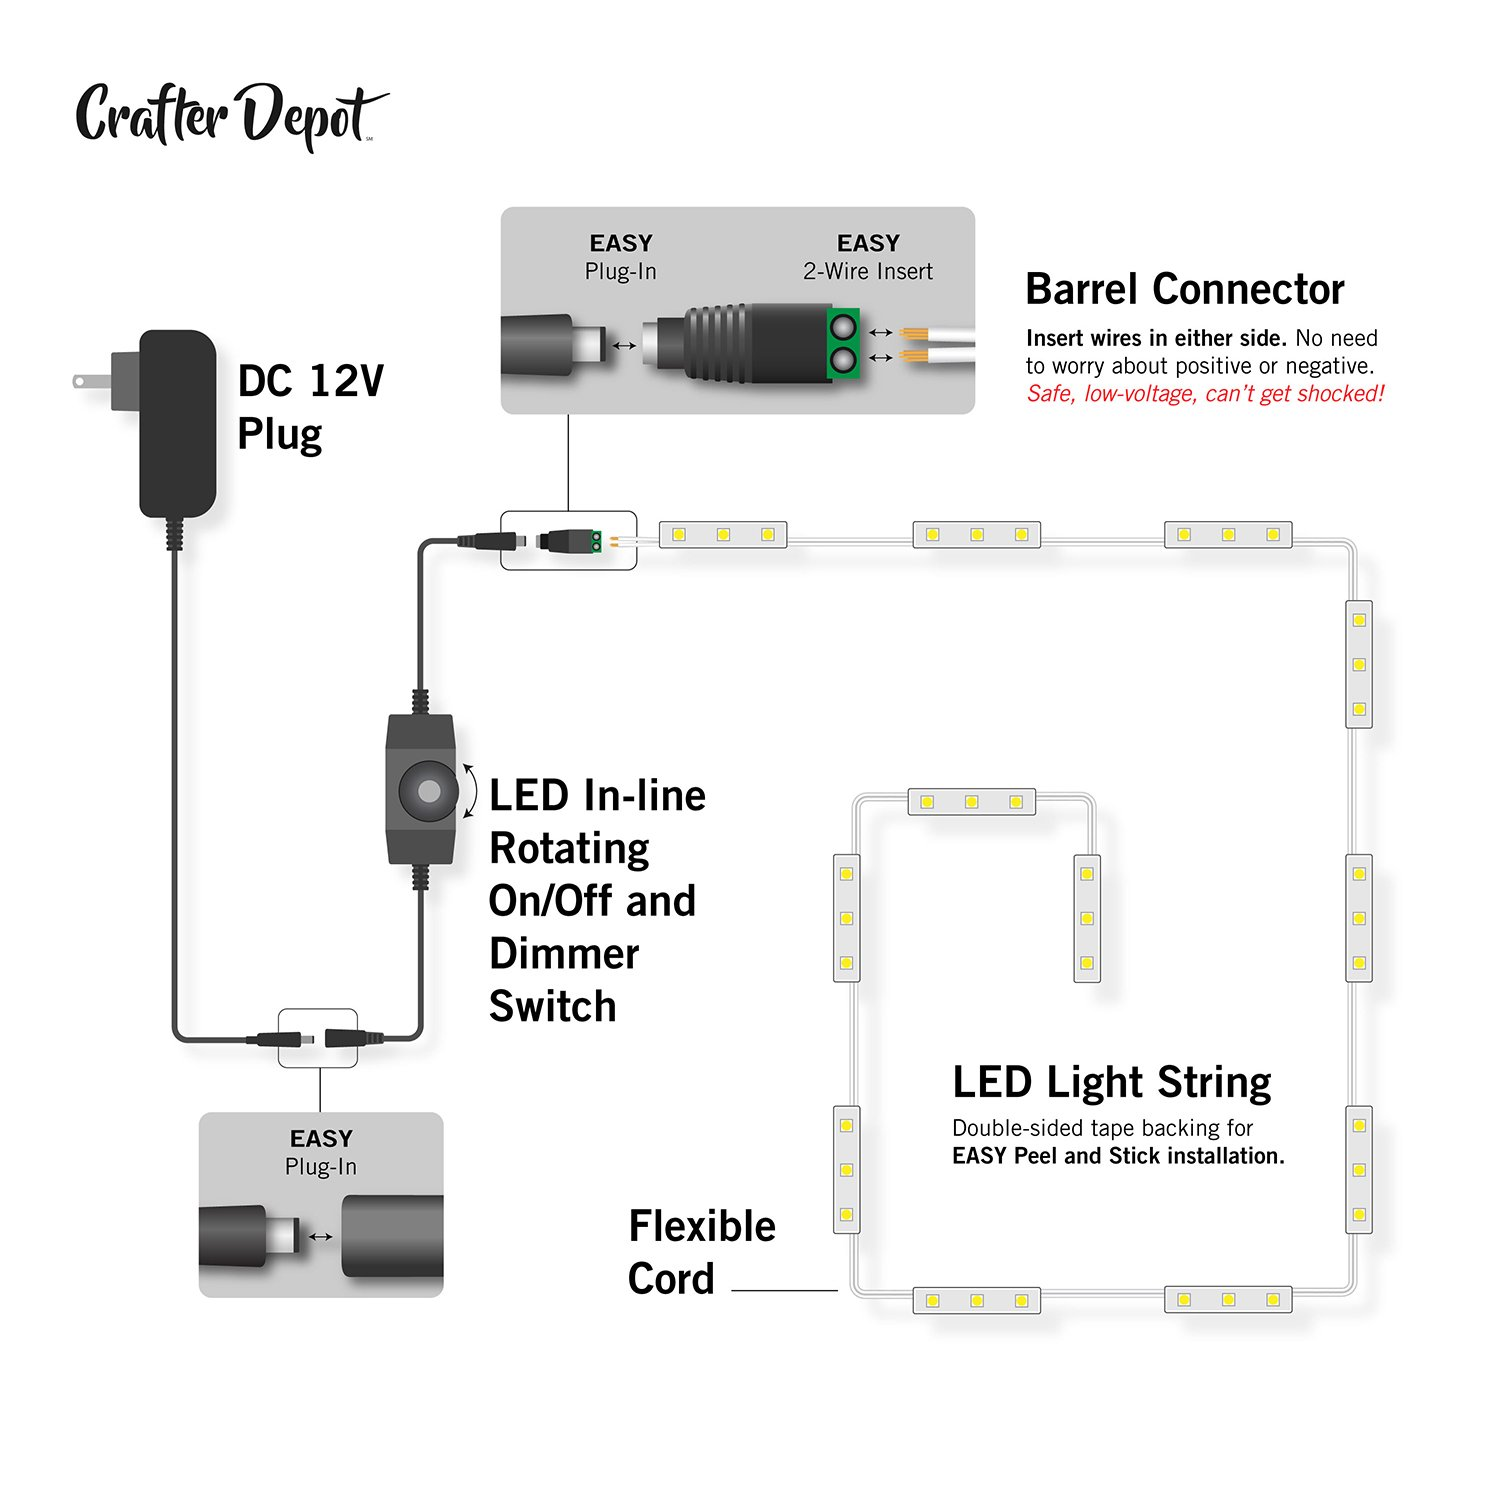 Astounding Led Light Strip Easy Plug In Hideaway Wire Over Under Cabinet Wiring Digital Resources Indicompassionincorg